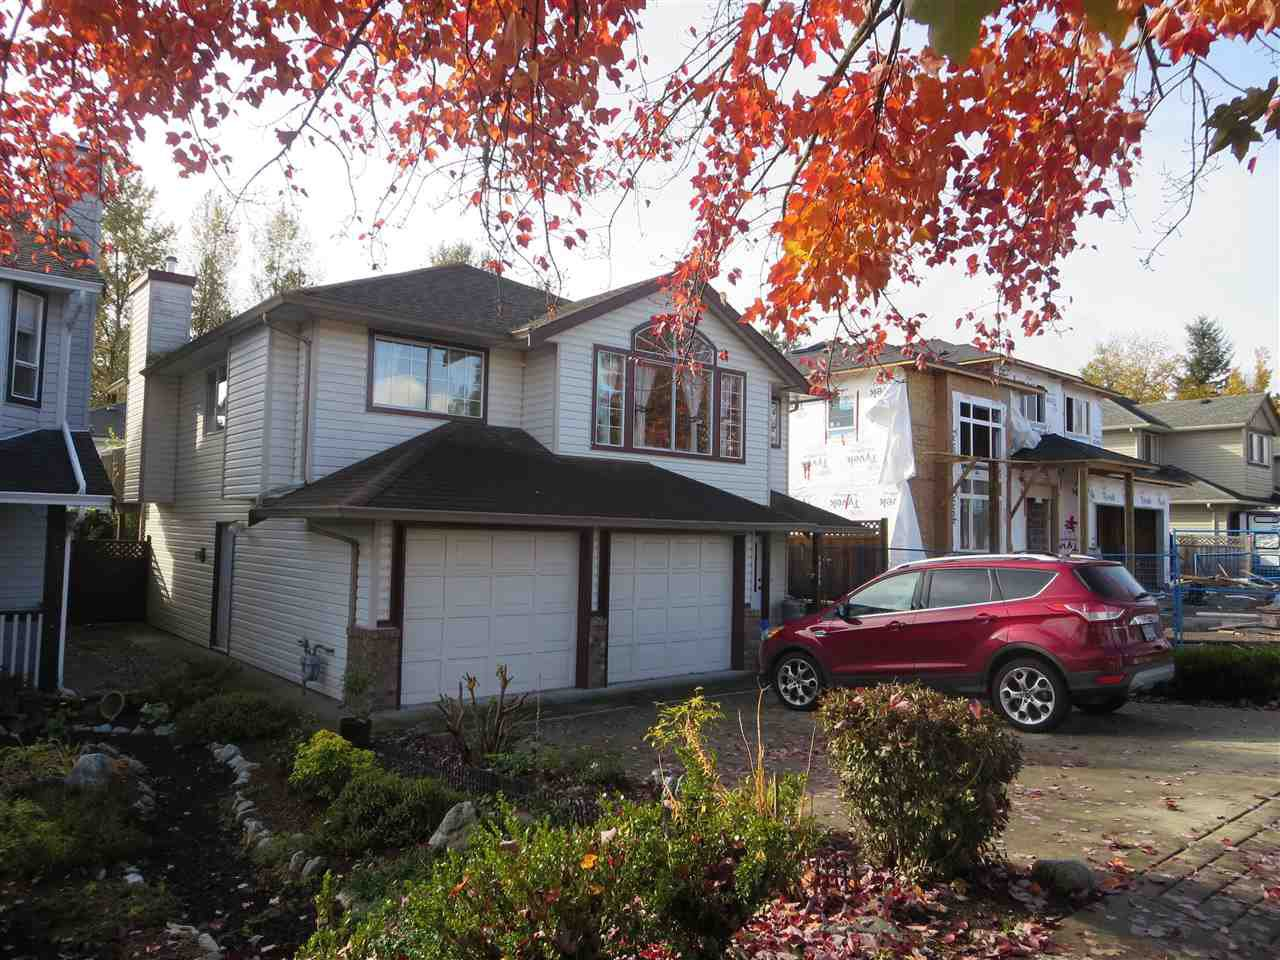 Photo 15: Photos: 19348 PARK Road in Pitt Meadows: Mid Meadows House for sale : MLS®# R2118610